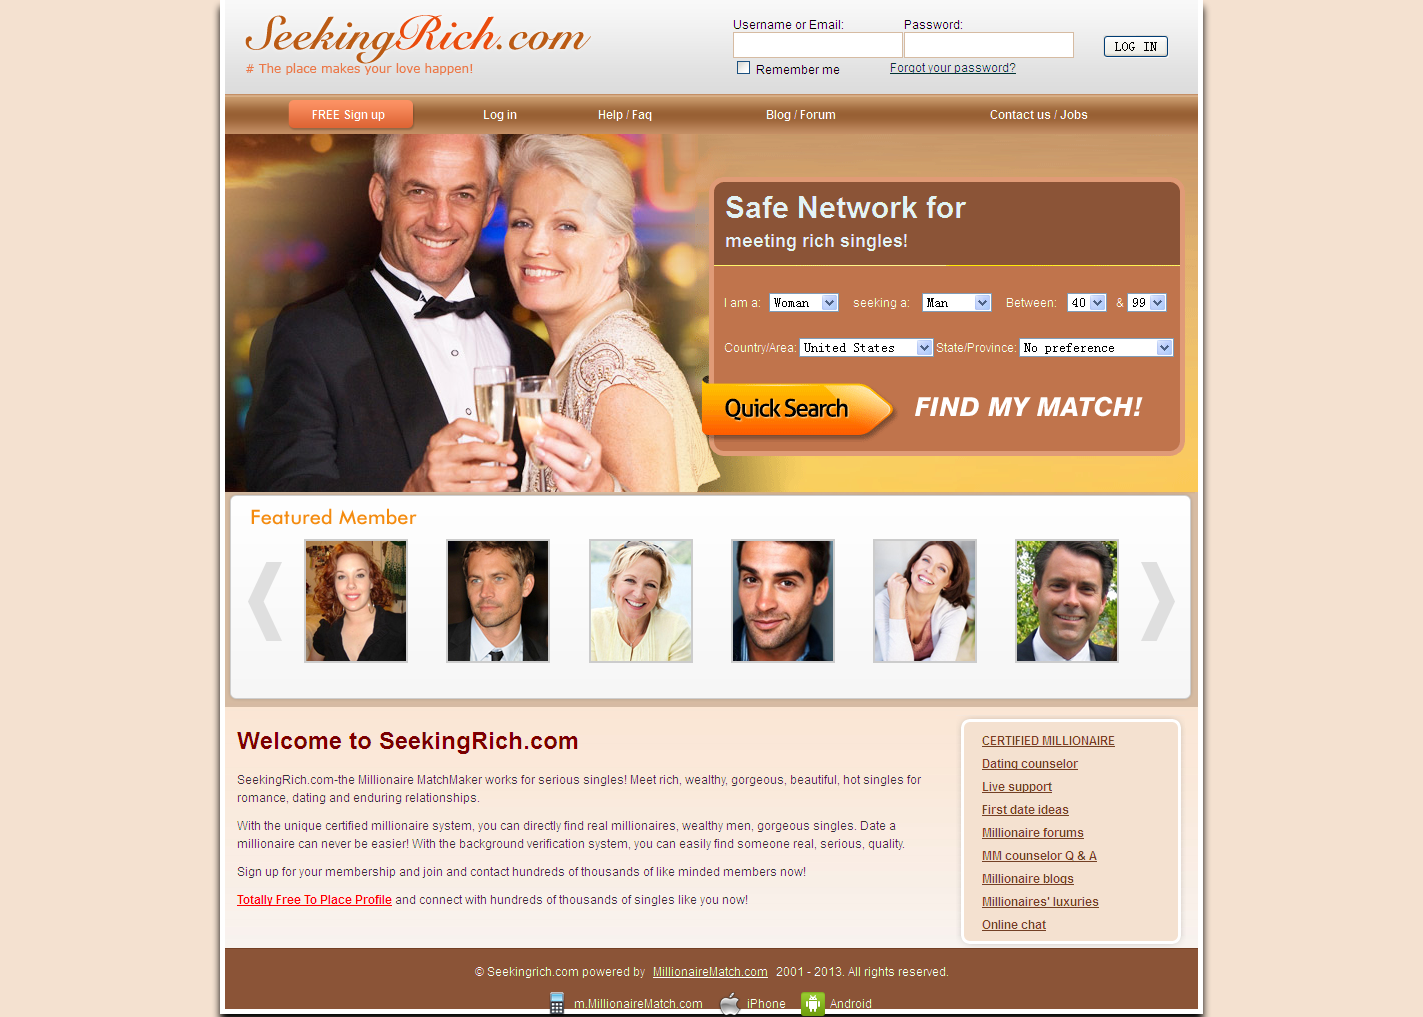 whitney singles dating site Meet jewish singles in your area for dating and romance @ jdatecom - the most popular online jewish dating community.